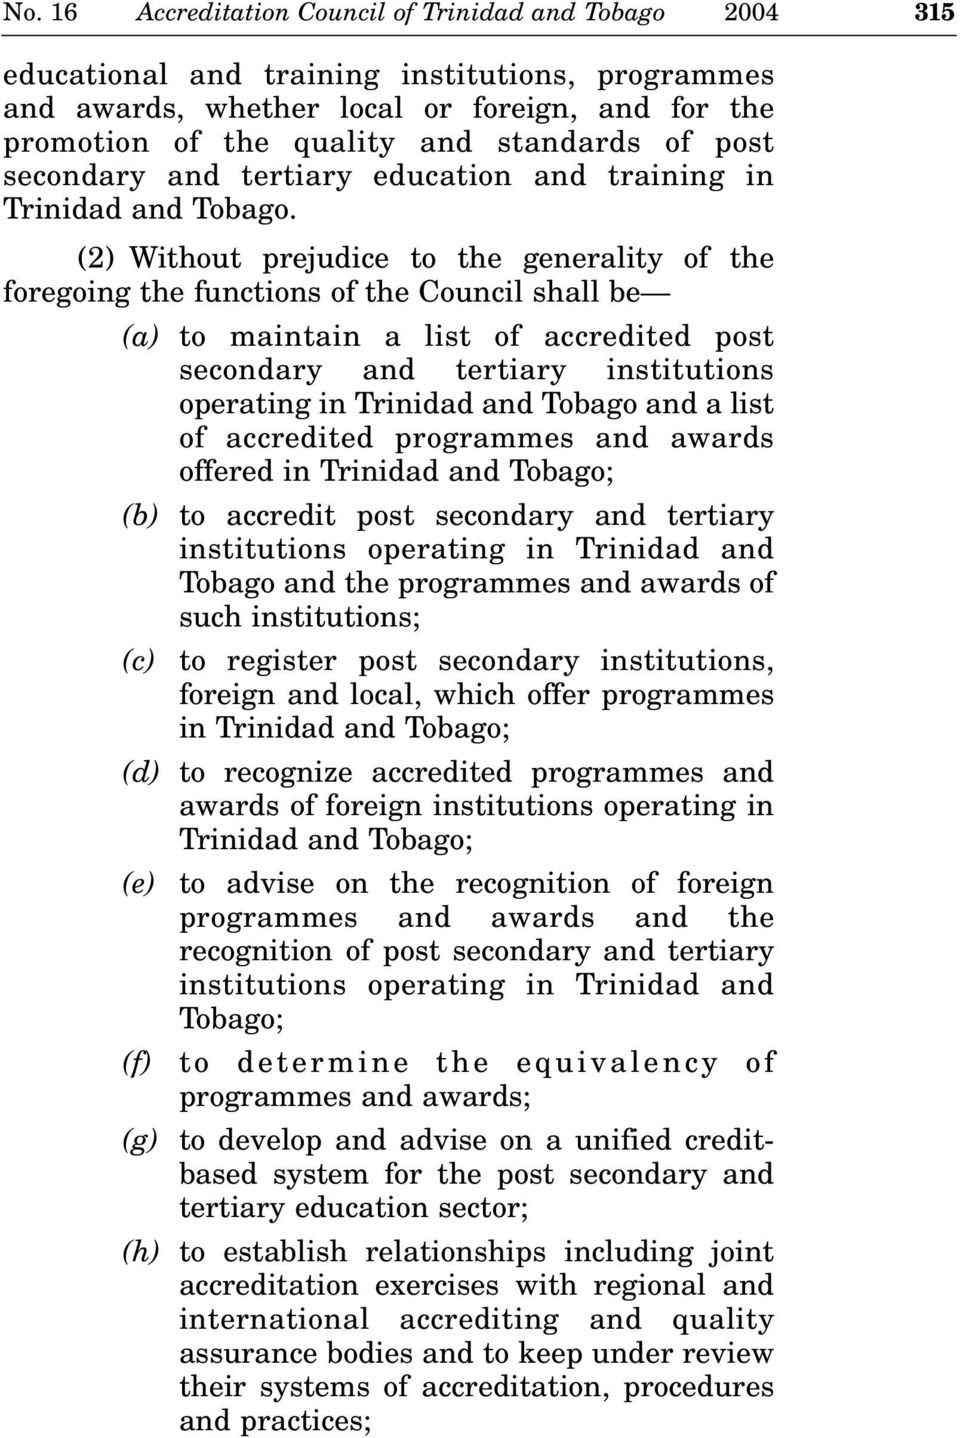 (2) Without prejudice to the generality of the foregoing the functions of the Council shall be (a) to maintain a list of accredited post secondary and tertiary institutions operating in Trinidad and